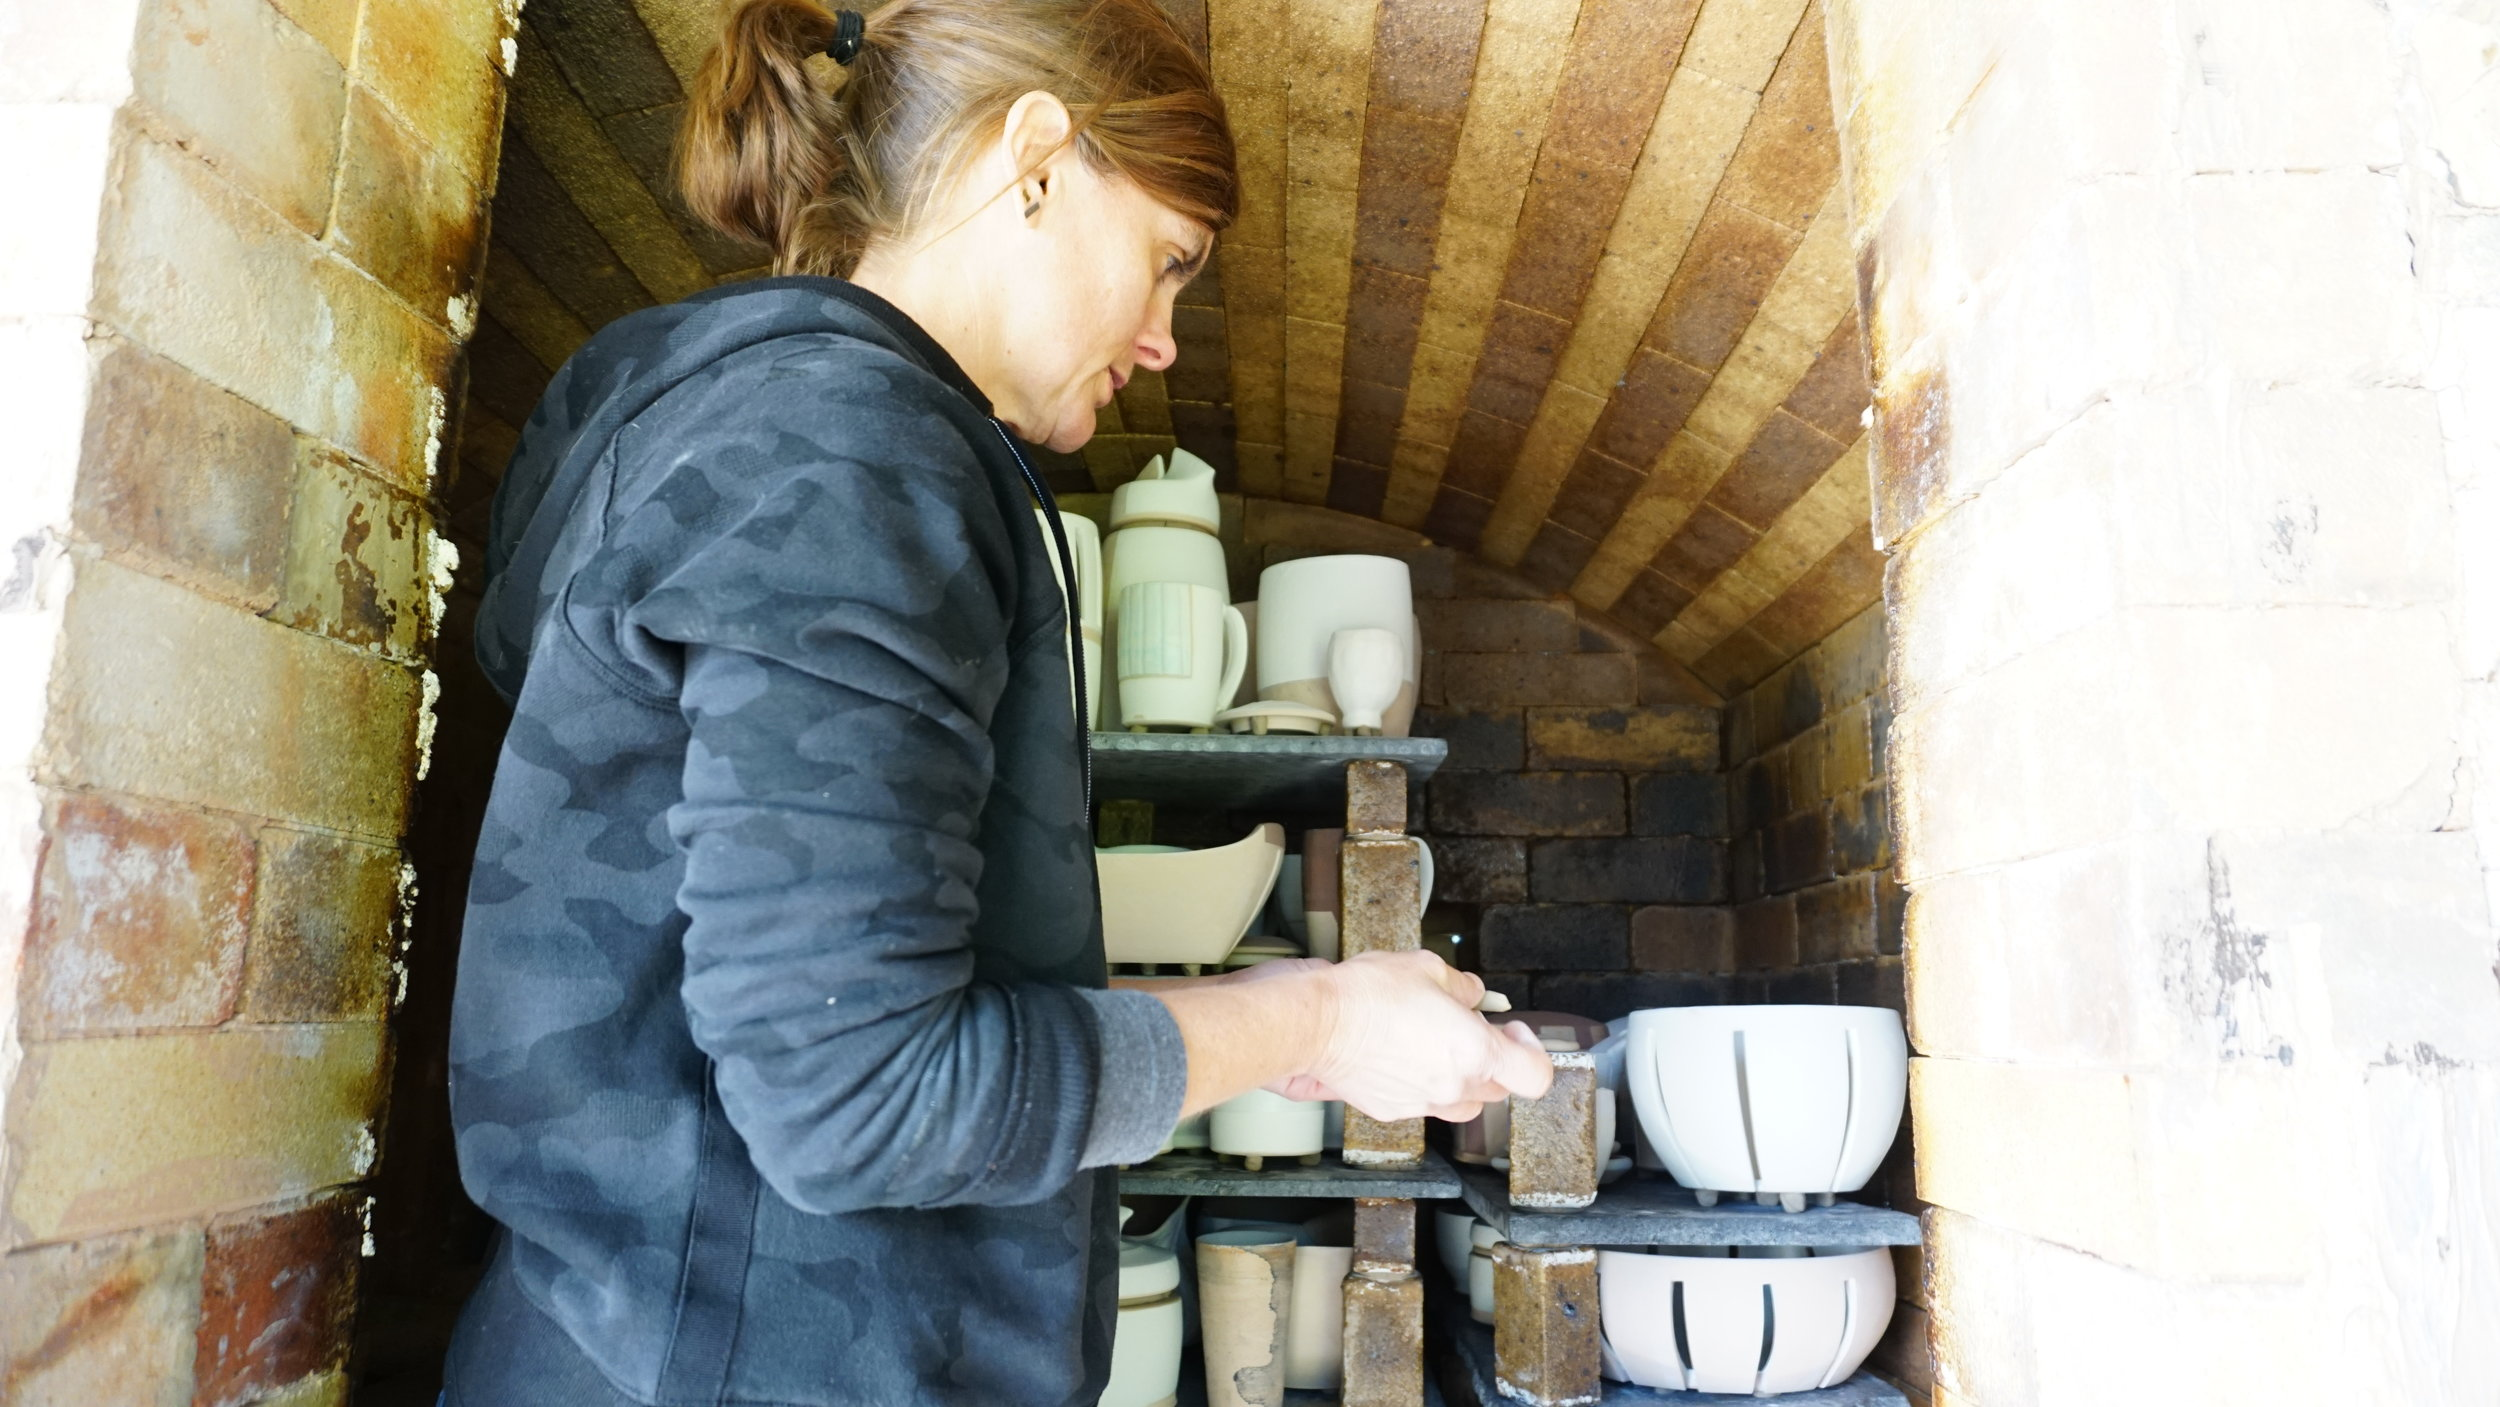 Please fill out the form below to get in touch with me about my pottery, kiln building availability, to schedule a studio visit or any other inquires regarding my work. (Photo Credit Marilyn Rivchin)